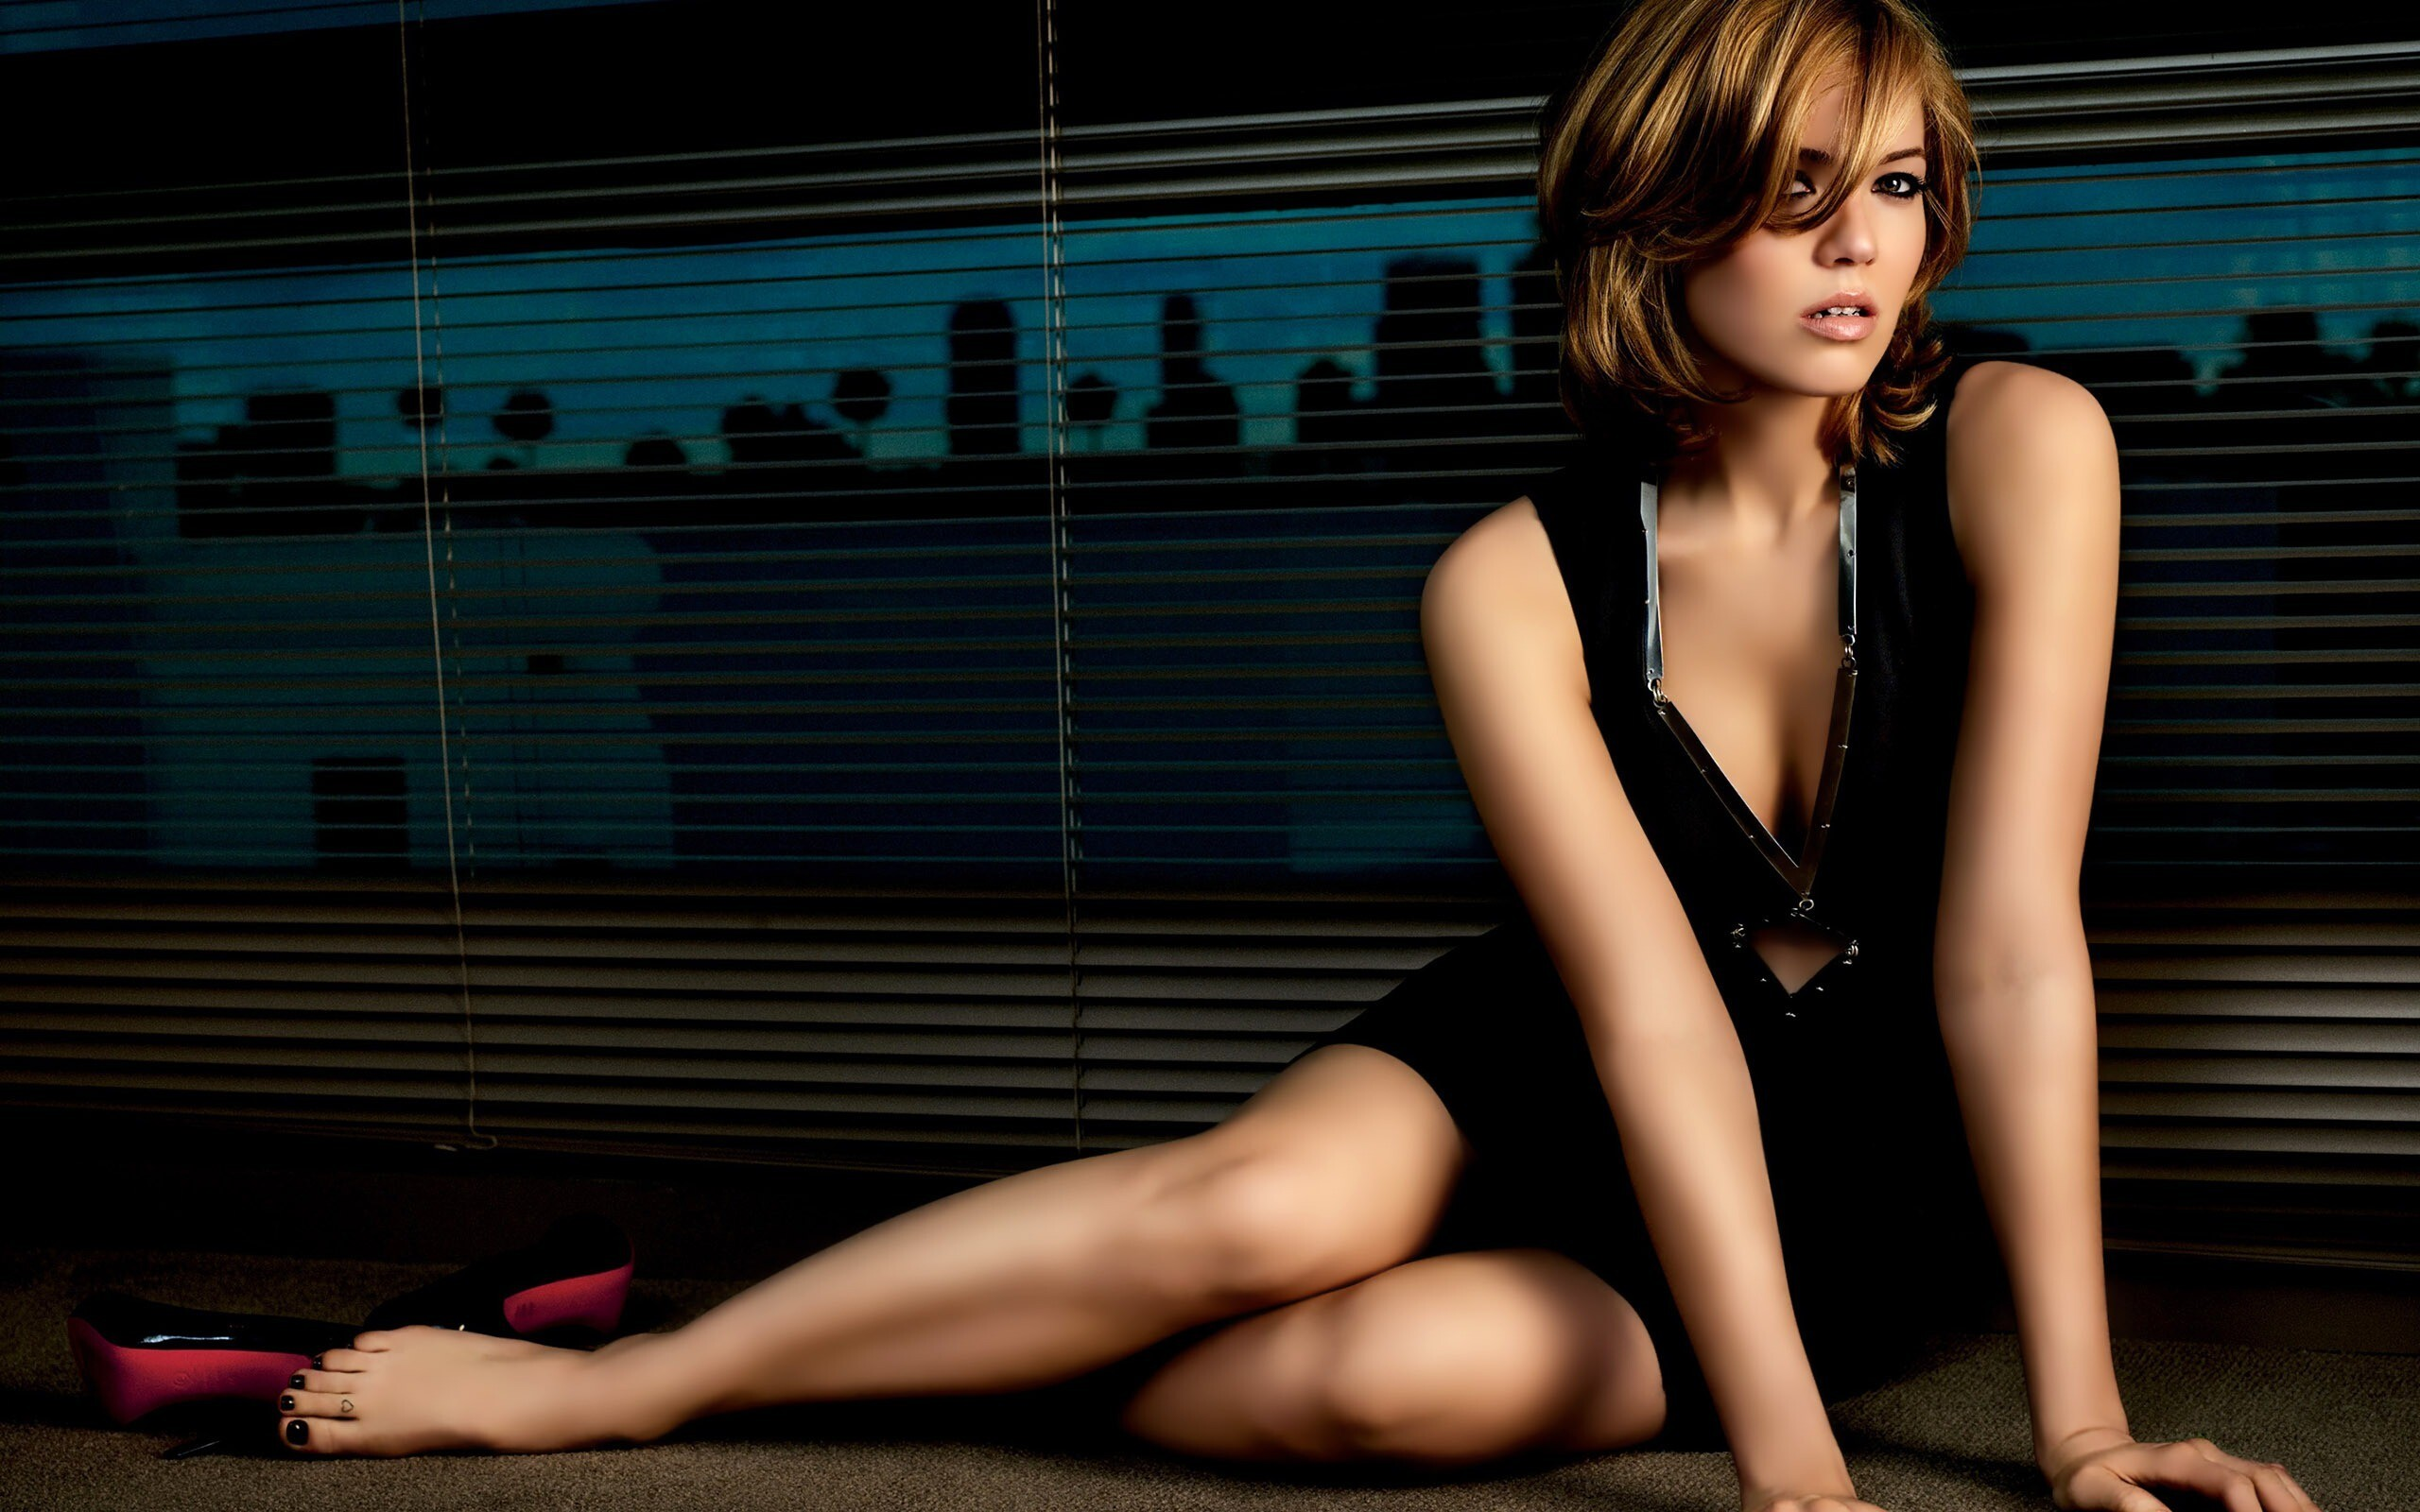 mandy-moore-model-image.jpg